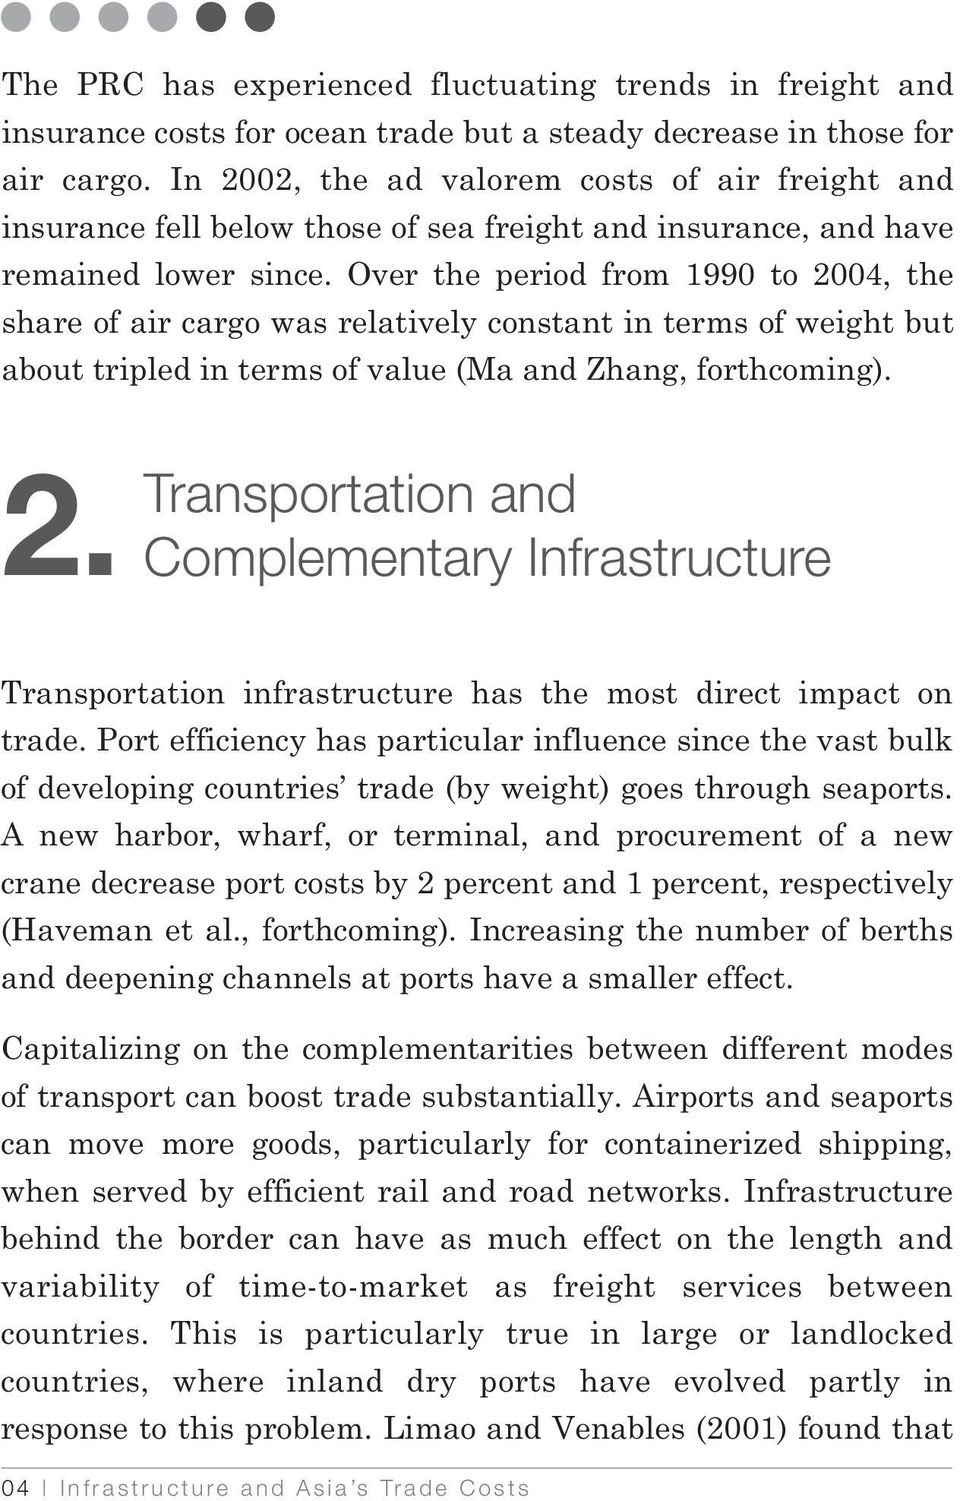 Over the period from 1990 to 2004, the share of air cargo was relatively constant in terms of weight but about tripled in terms of value (Ma and Zhang, forthcoming). 2. Transportation and Complementary Infrastructure Transportation infrastructure has the most direct impact on trade.